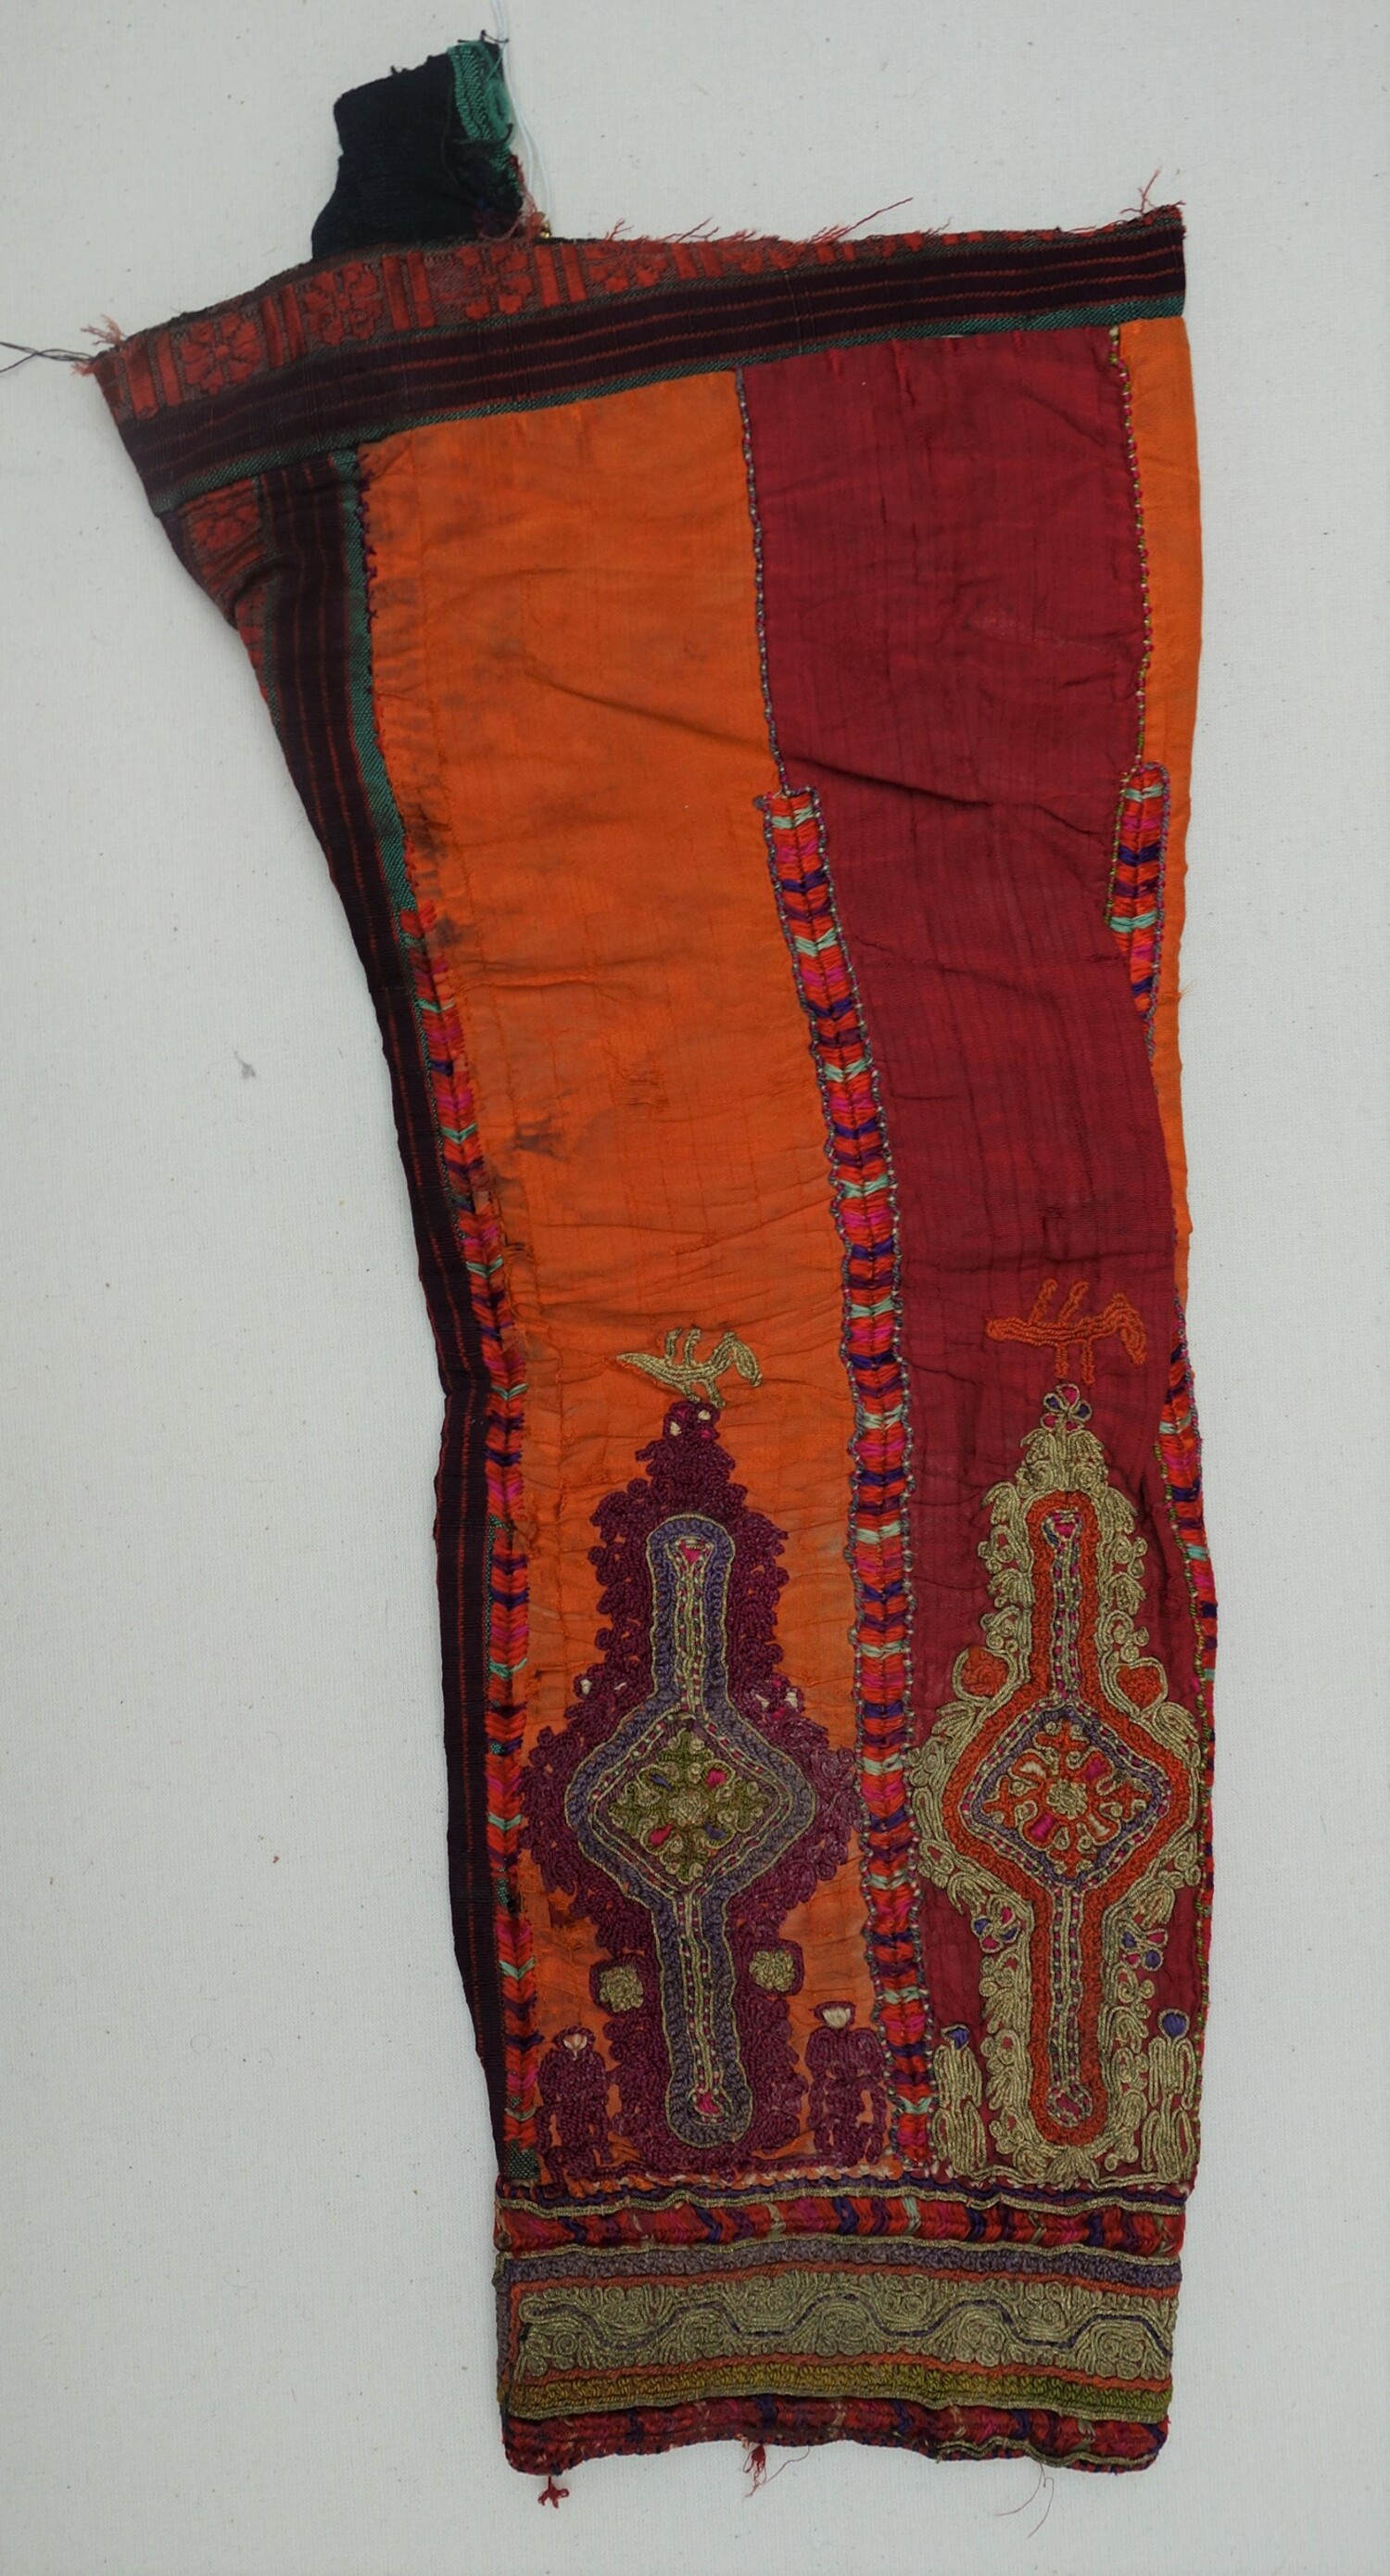 Embroidered sleeve from a Bethlehem dress, mid-20th century (TRC 2020.2137).